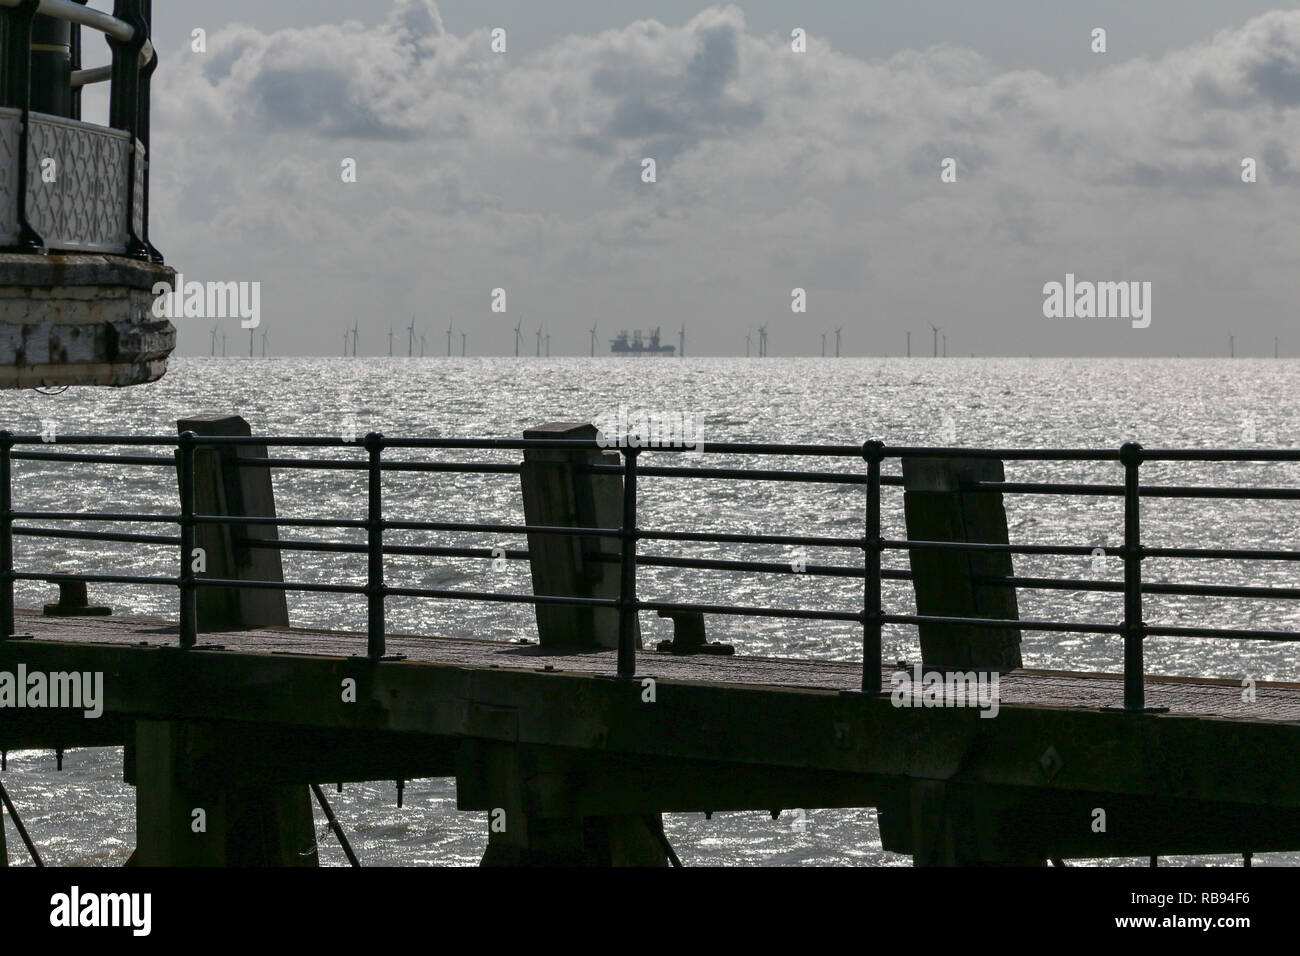 Looking out to see towards the Rampion wind farm from the end of the pier - Stock Image